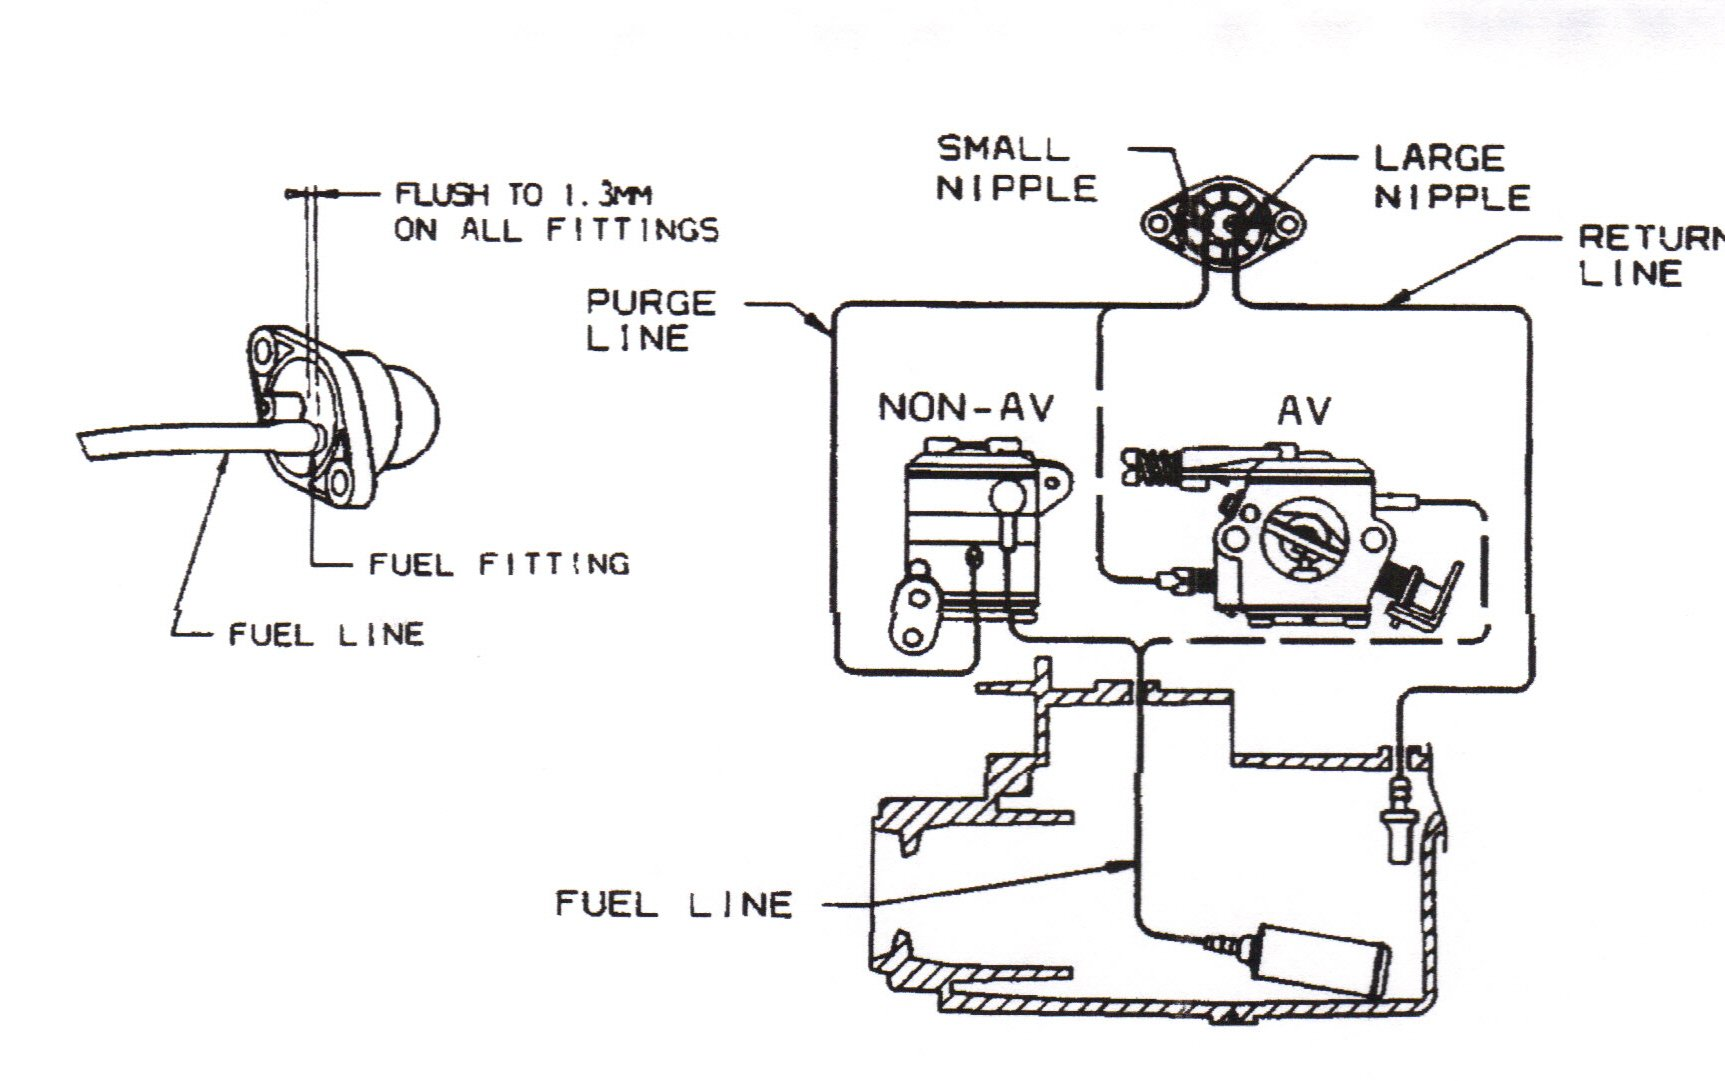 wanted to know the fuel line installation for mcculloch